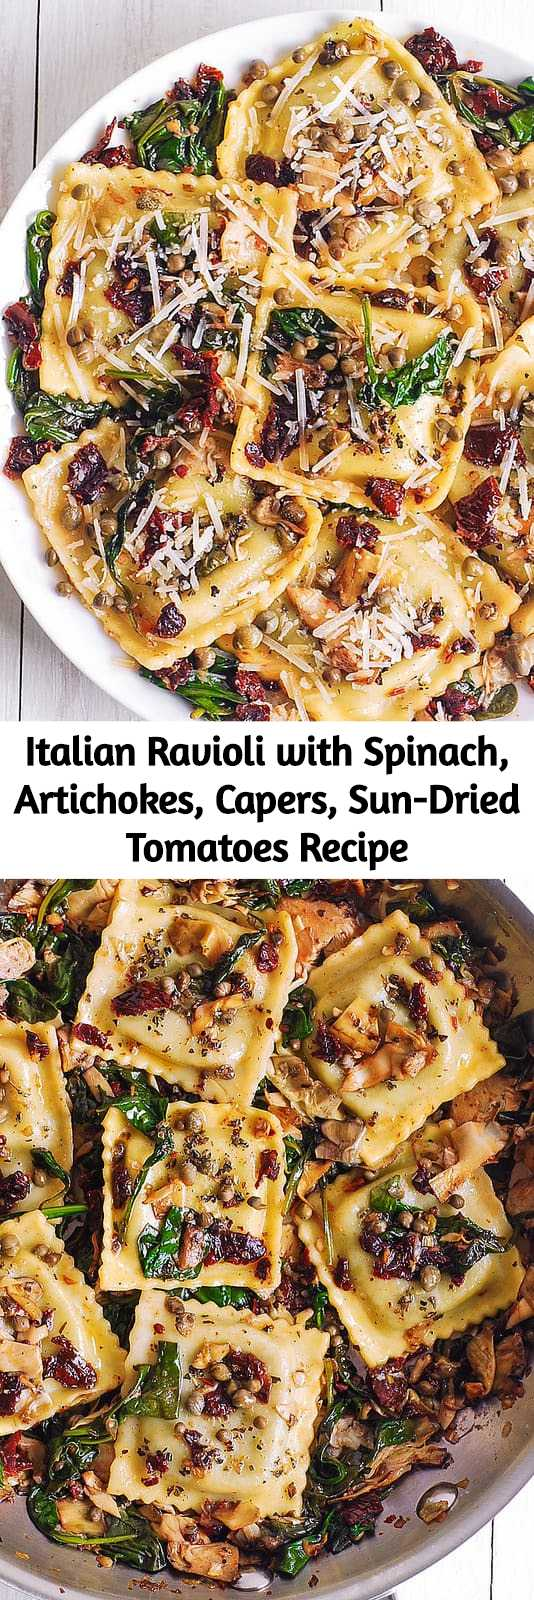 Photo of Italian Ravioli with Spinach, Artichokes, Capers, Sun-Dried Tomatoes Recipe